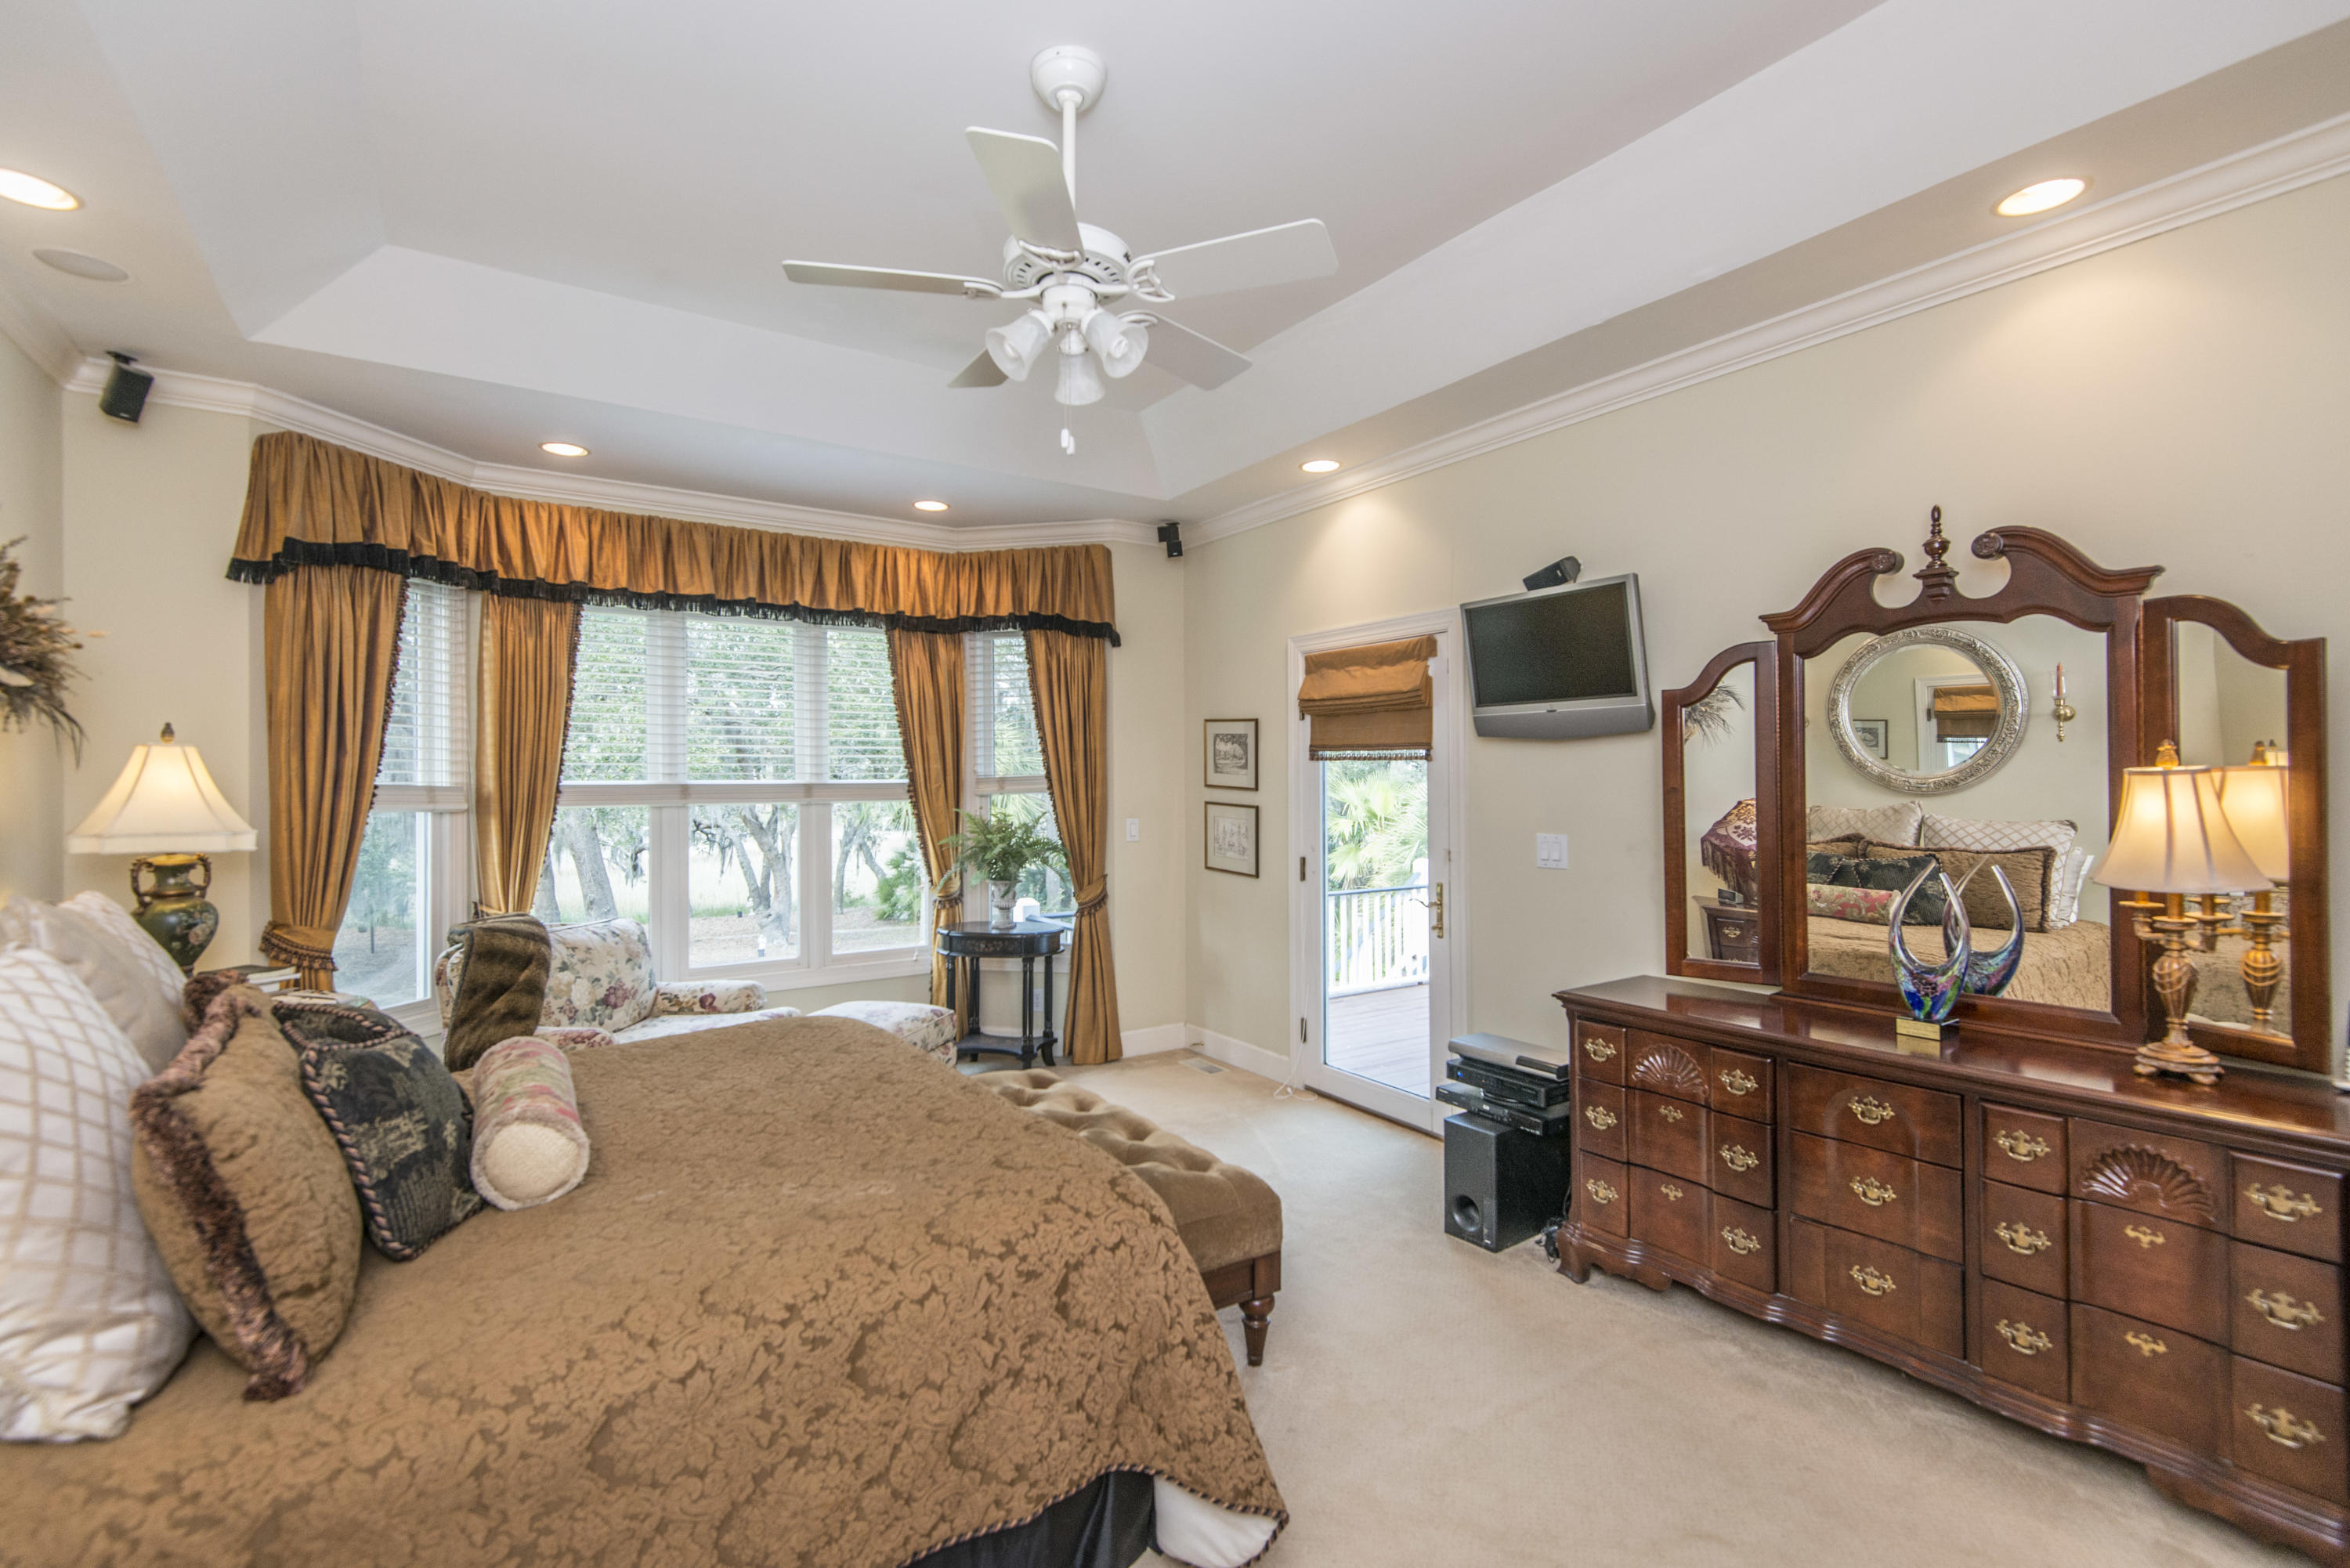 Stiles Point Plantation Homes For Sale - 906 Kushiwah Creek, Charleston, SC - 24